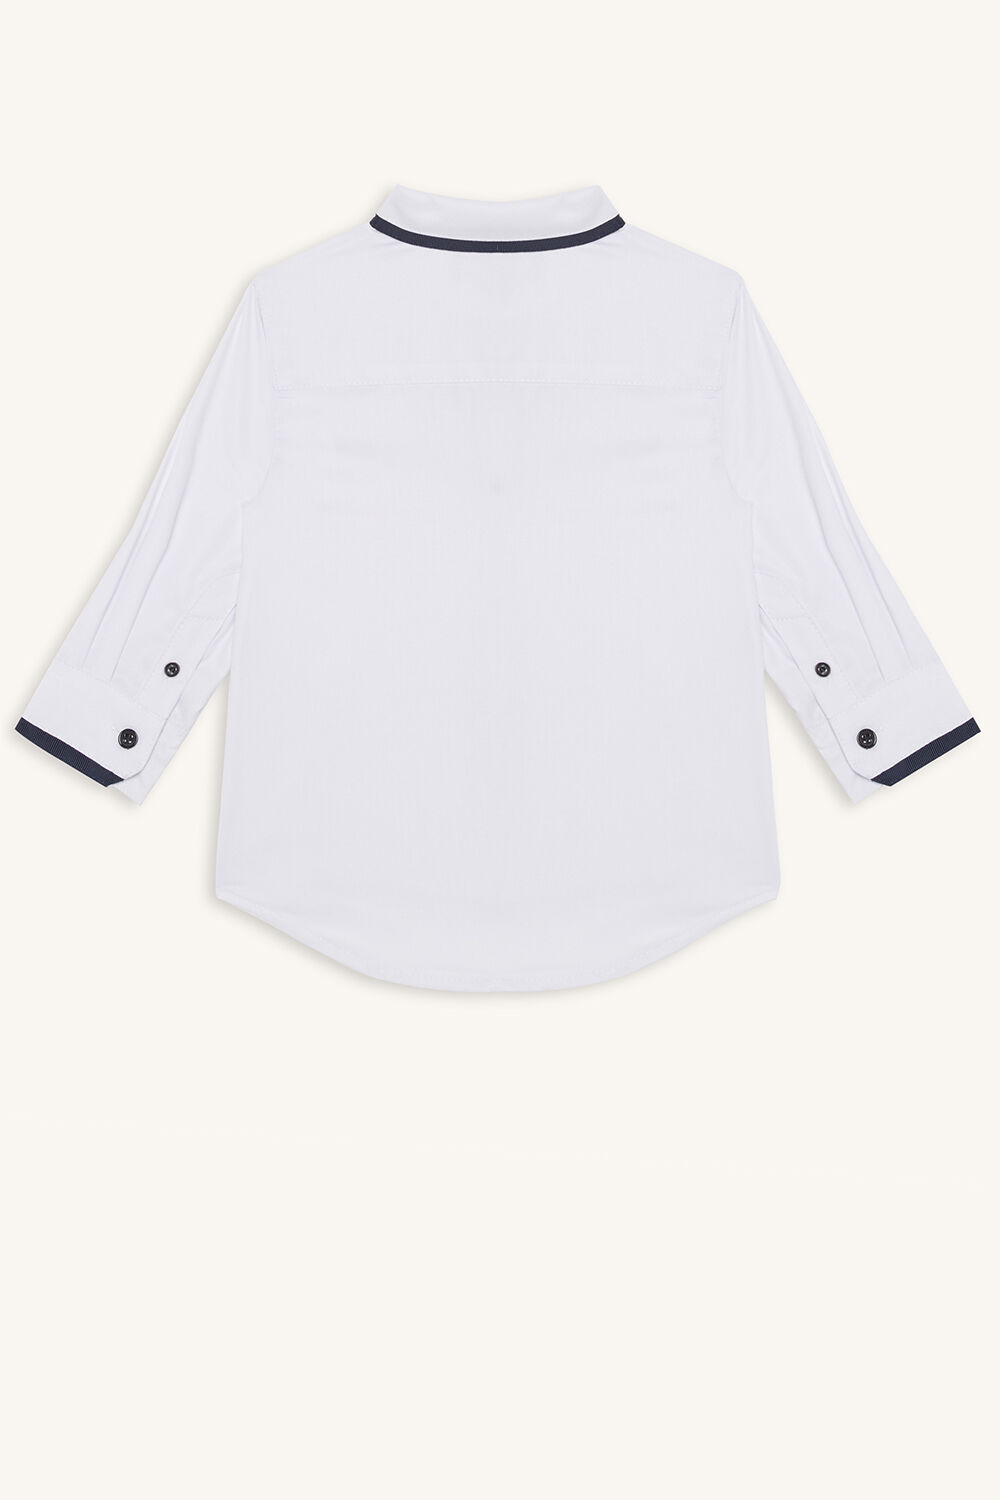 CONTRAST SHIRT in colour BRIGHT WHITE